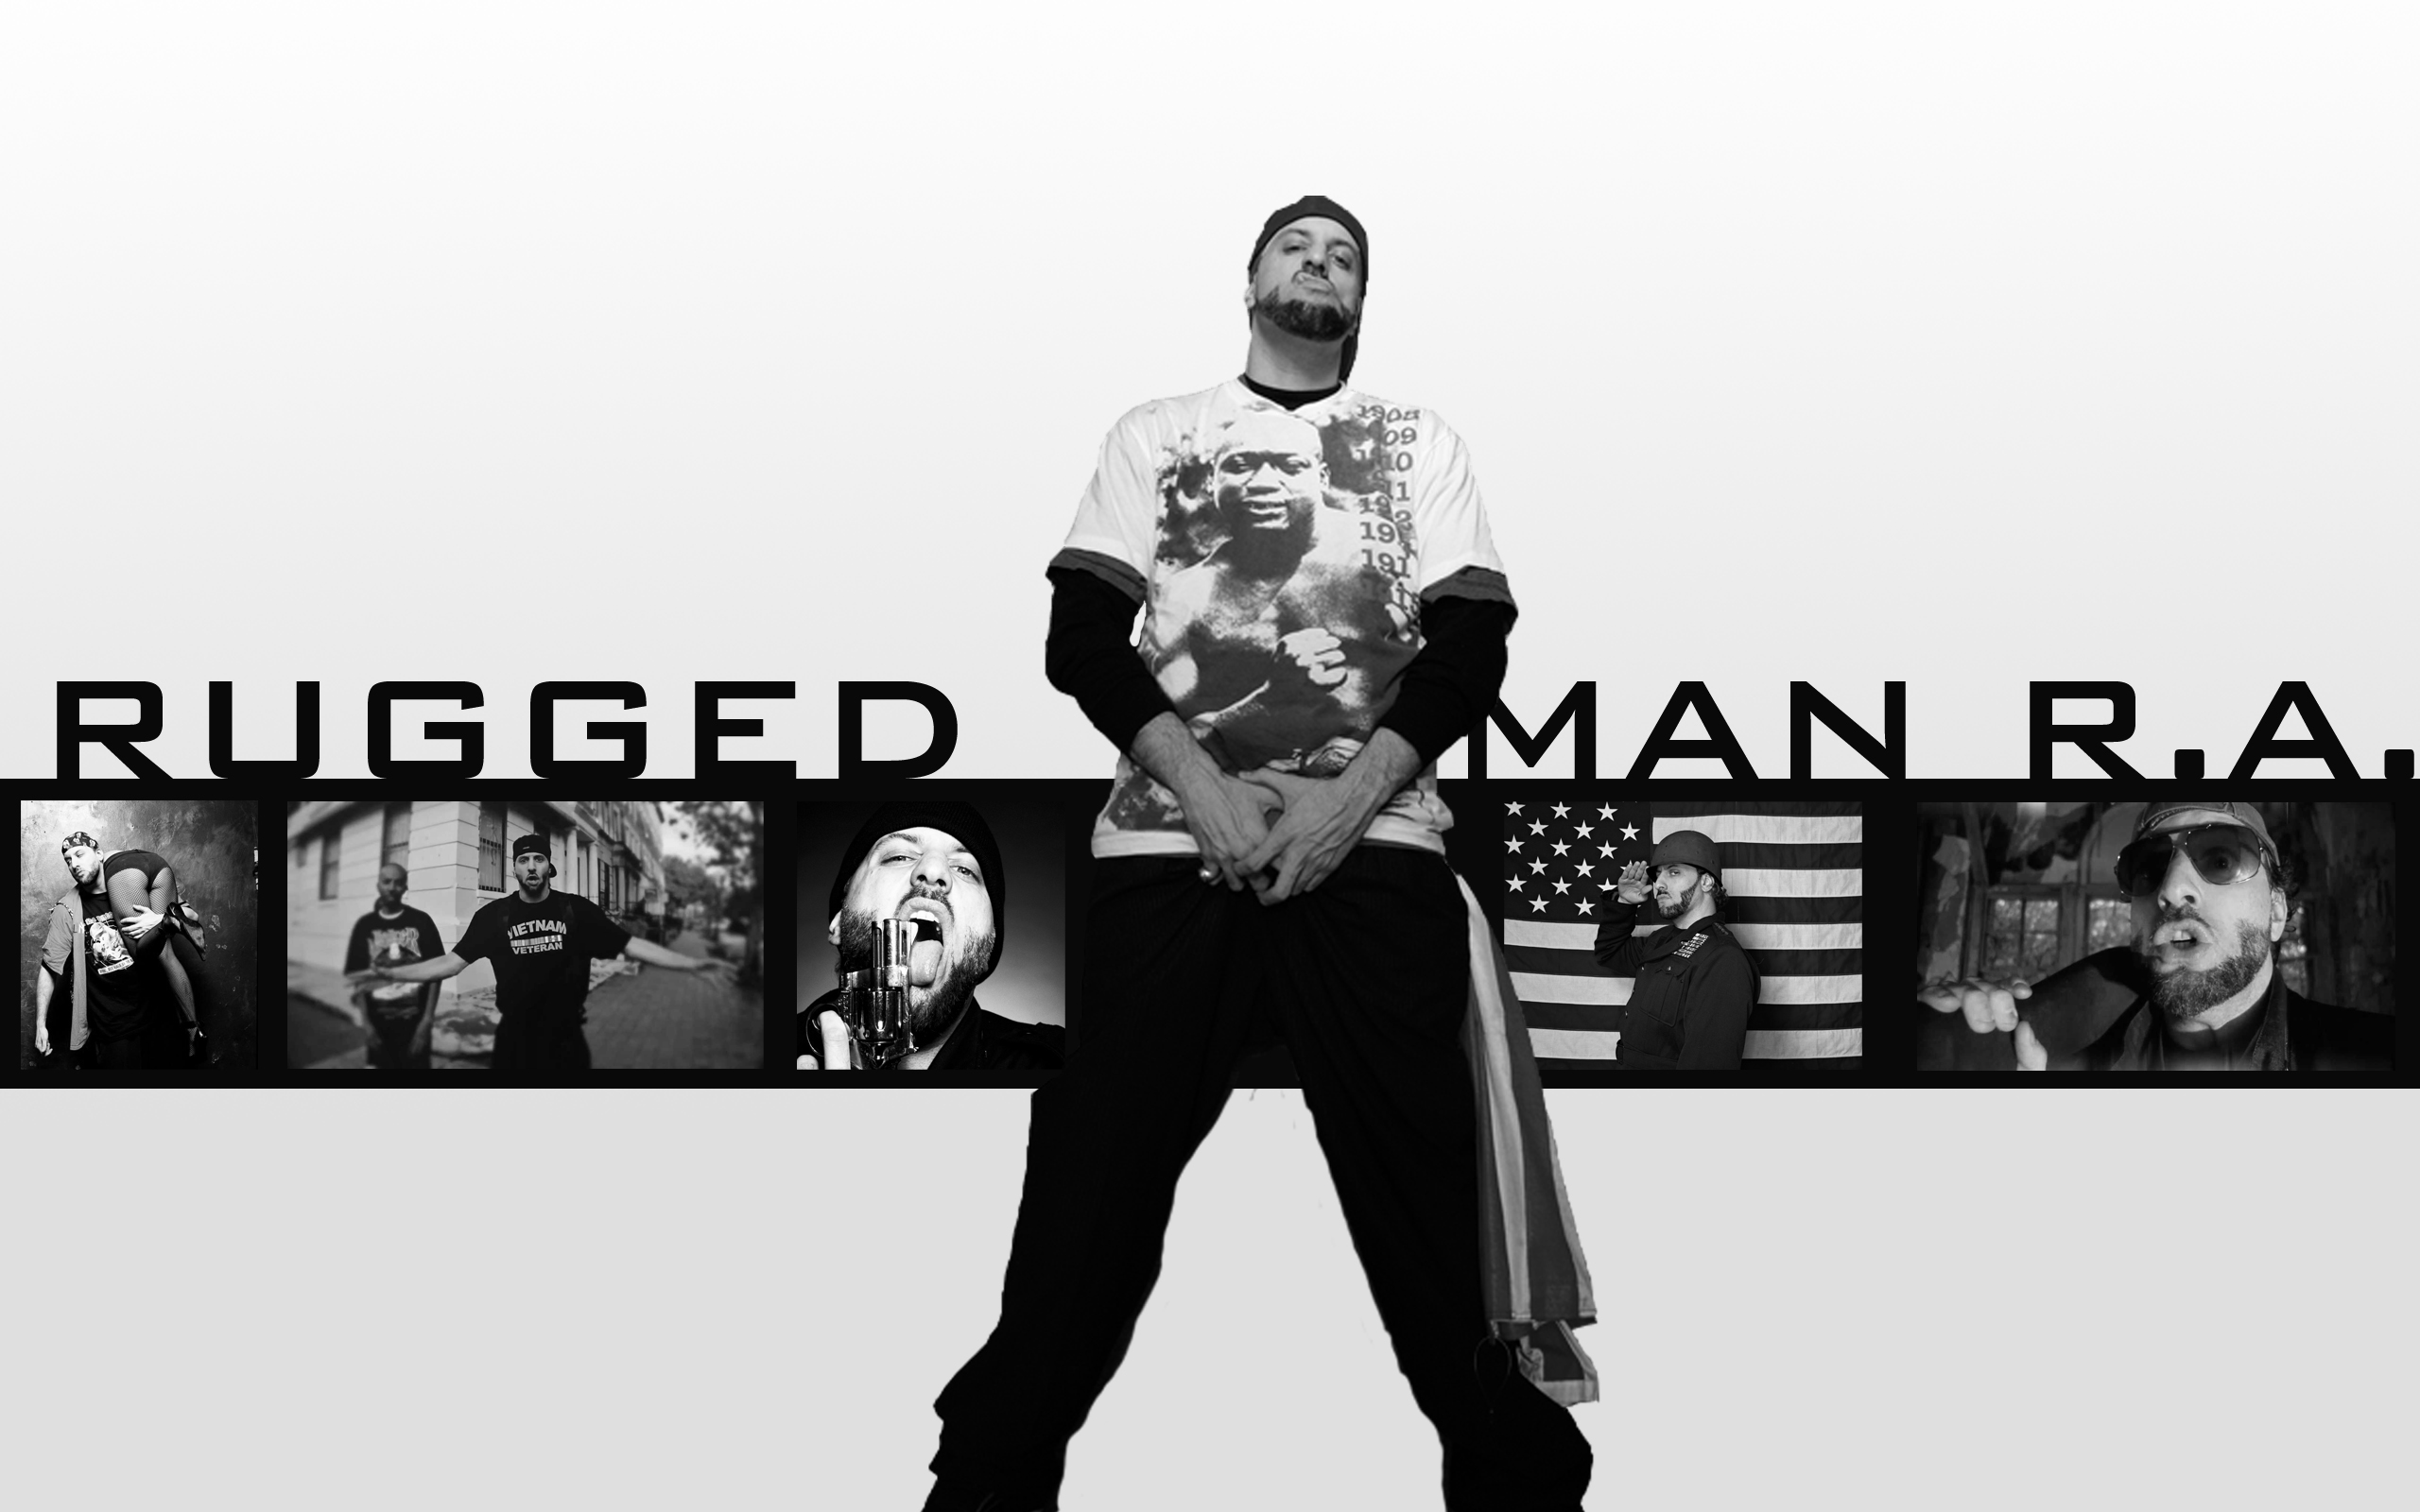 ... RA The Rugged Man Wallpaper 2560x1600 By G Lab